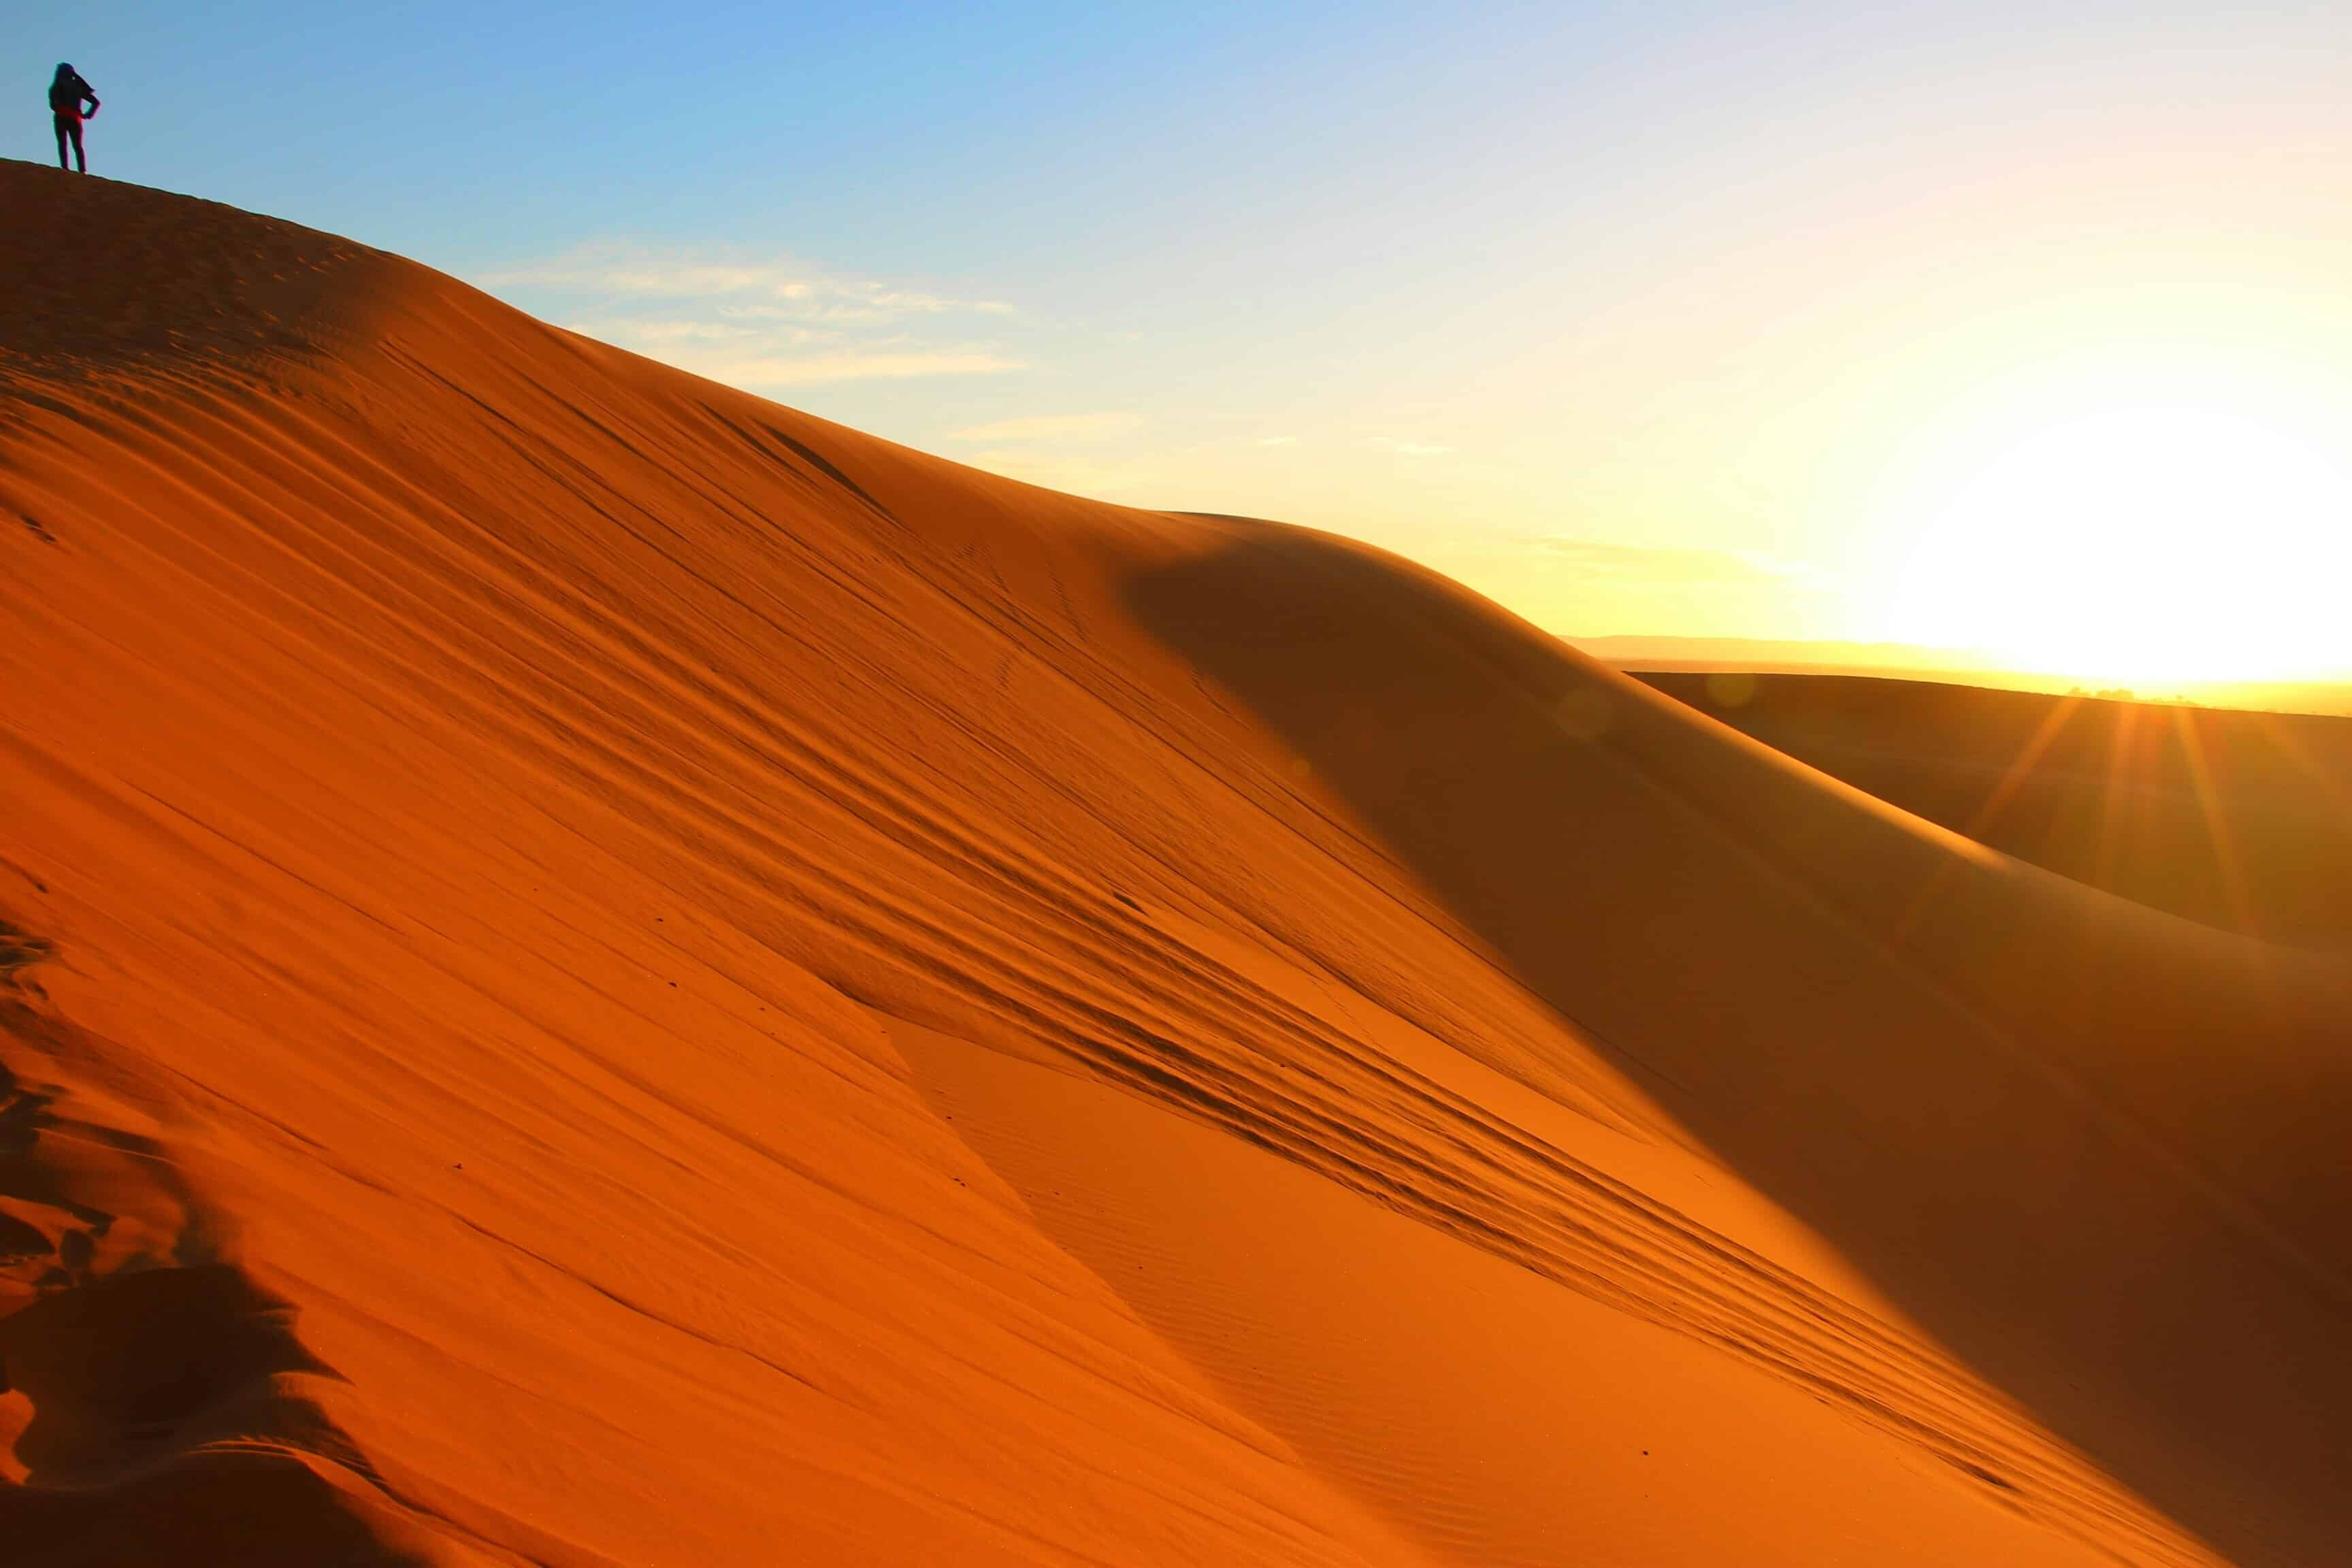 Experience the isolation and beauty of the Sahara Desert on your tour.